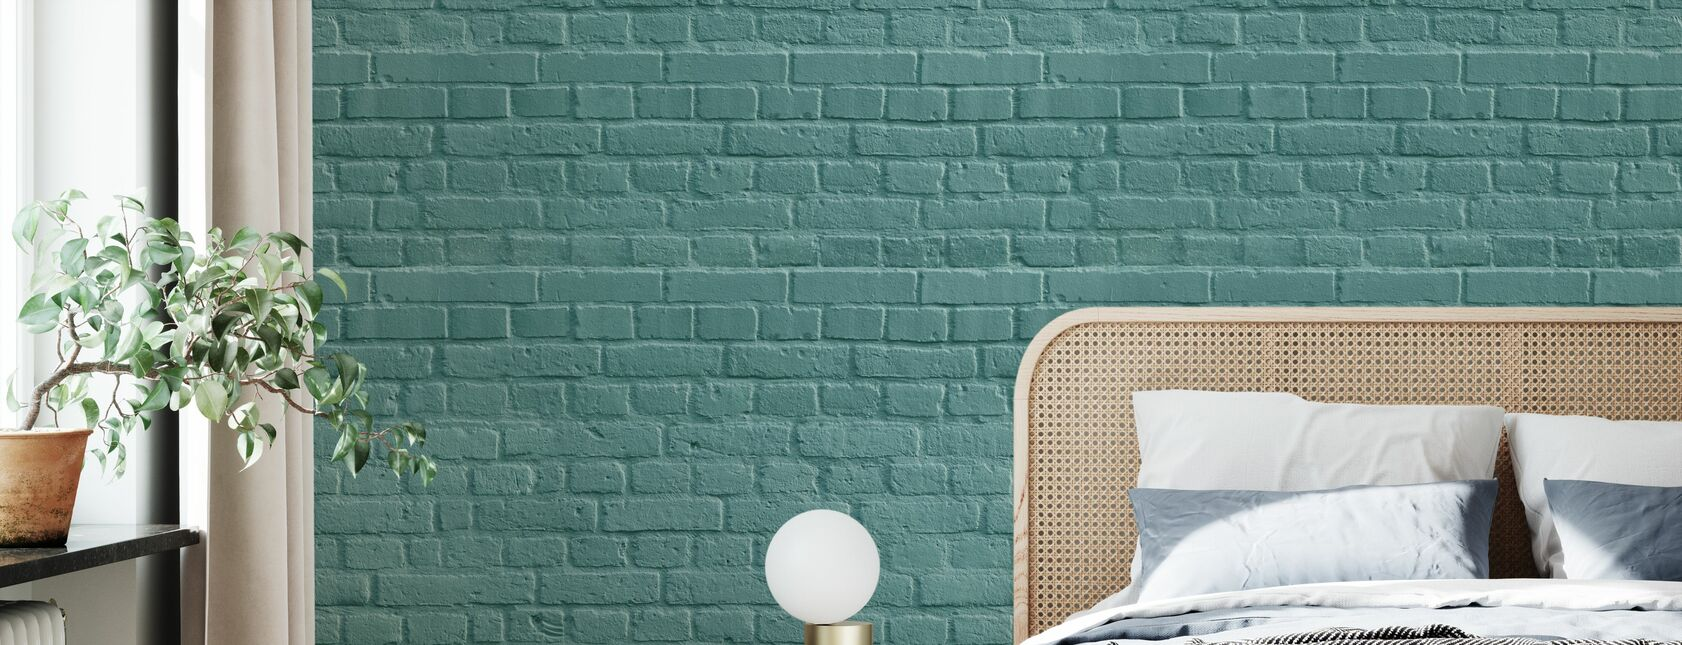 Turquoise Colored Brick Wall - Wallpaper - Bedroom